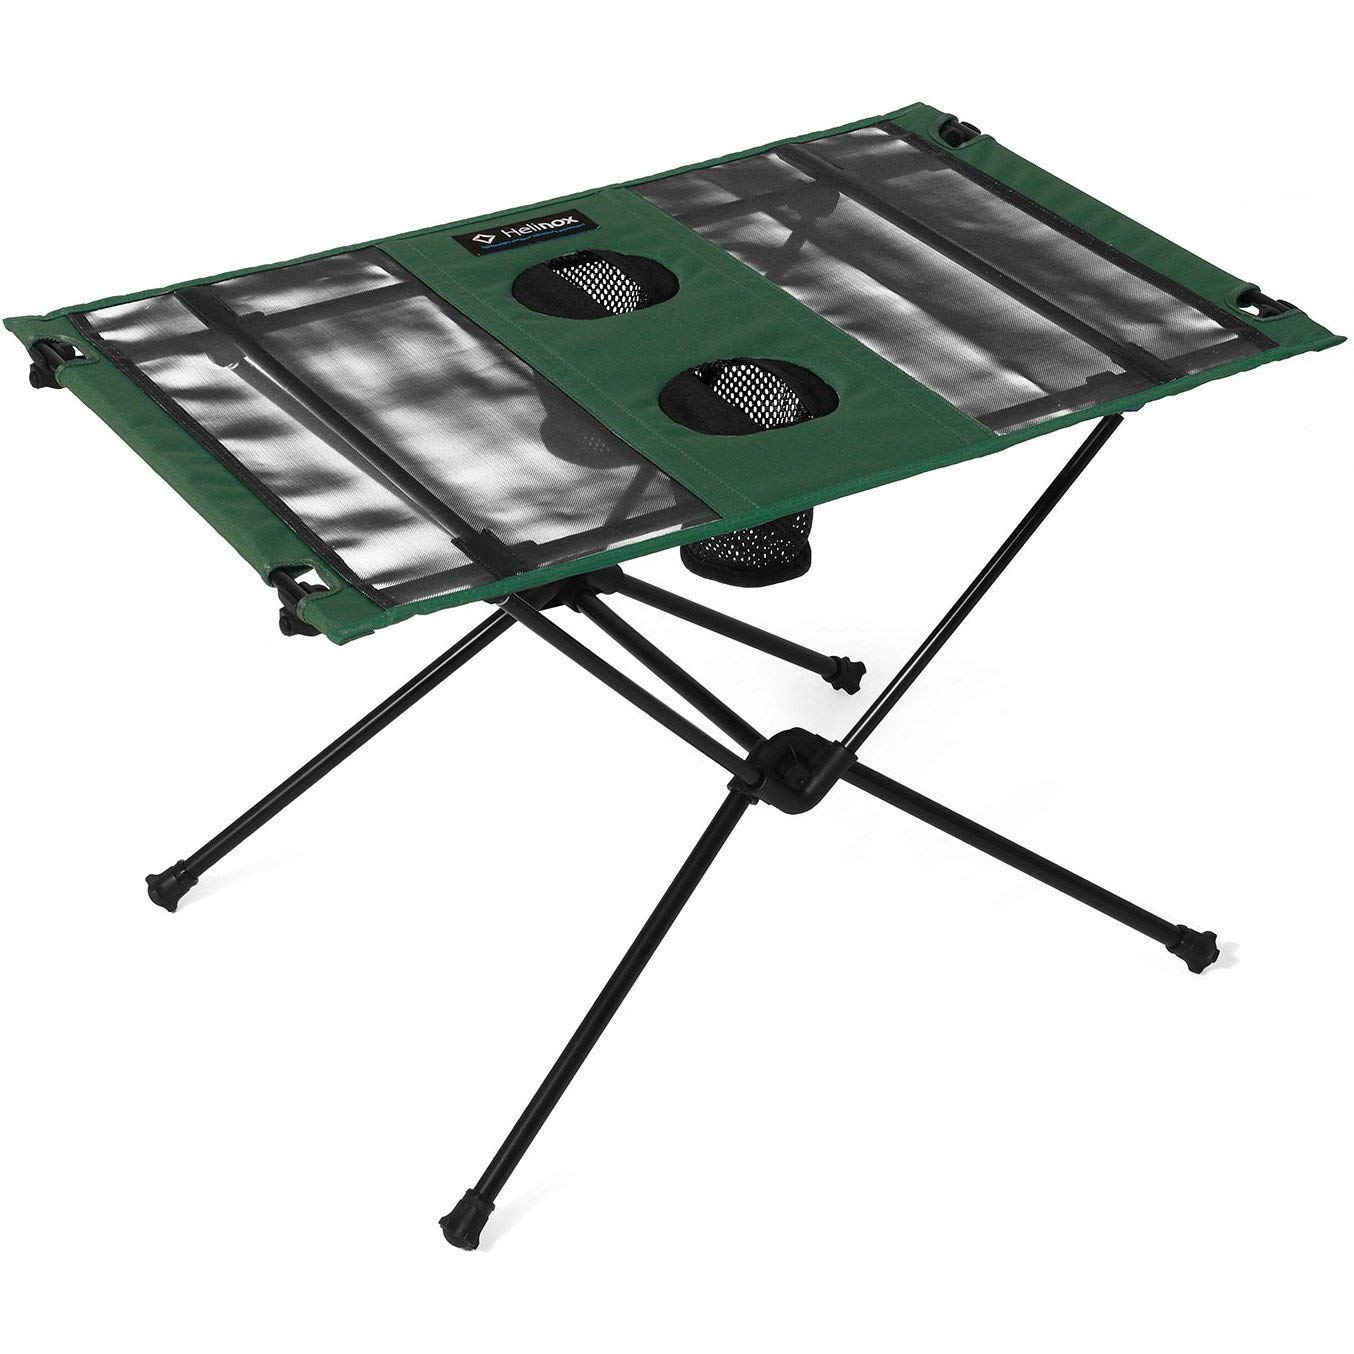 Helinox Table One Camping Accessory One Size Green Black